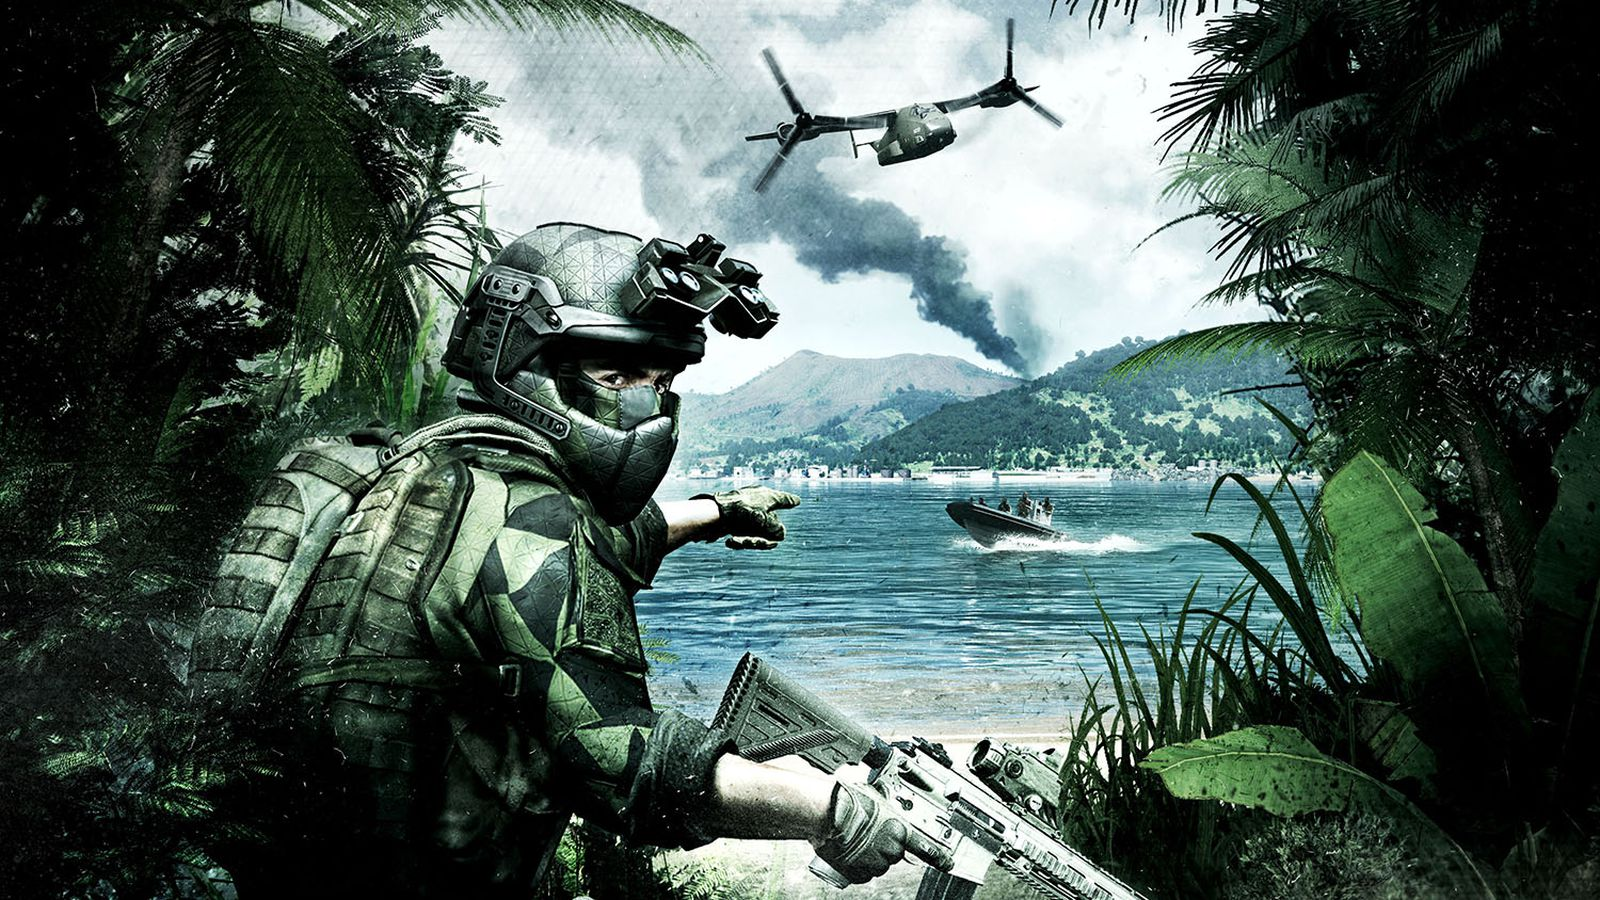 arma 3 trailer unveils next expansion reveals roots in